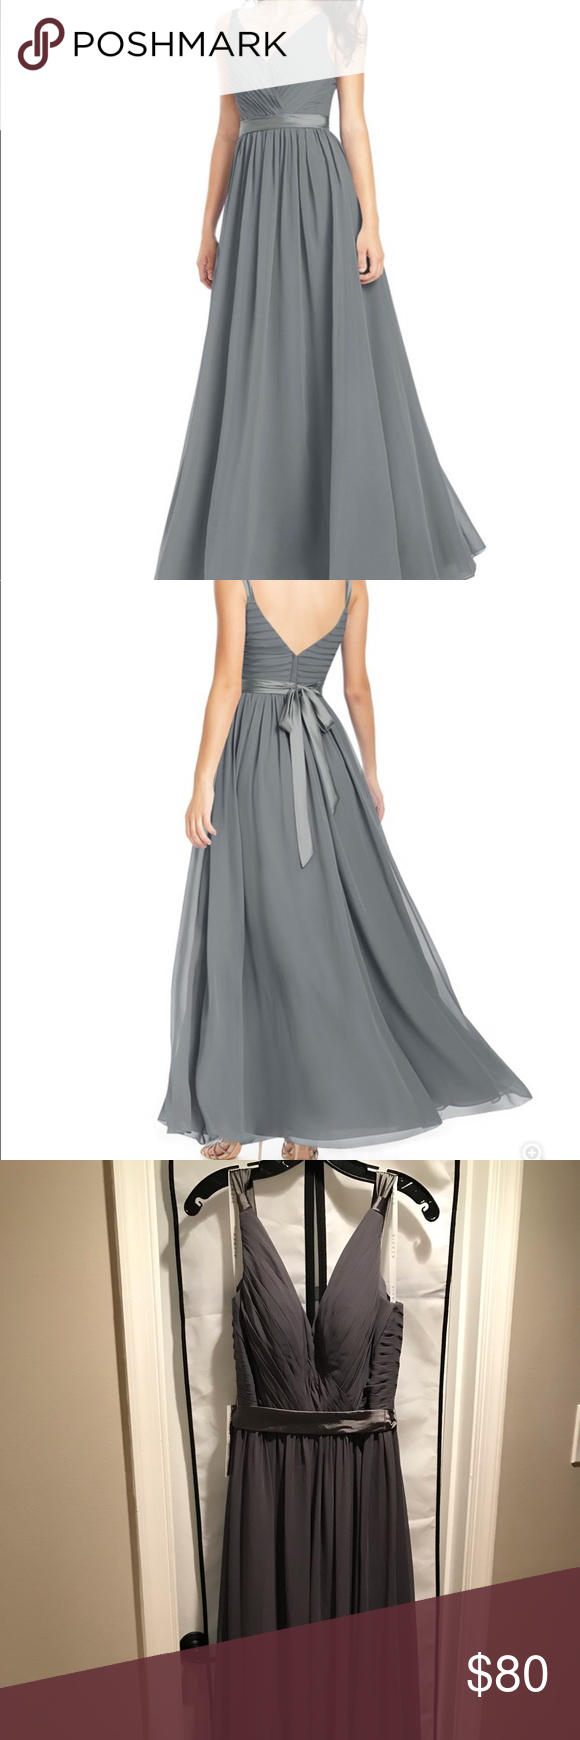 af336a8ad47 Azazie Leanna Steel Grey Size 10 Azazie Leanna bridesmaid dress. Steel  grey. Never worn. Never altered. Size 10. V neck dress features a bow tie  back at ...